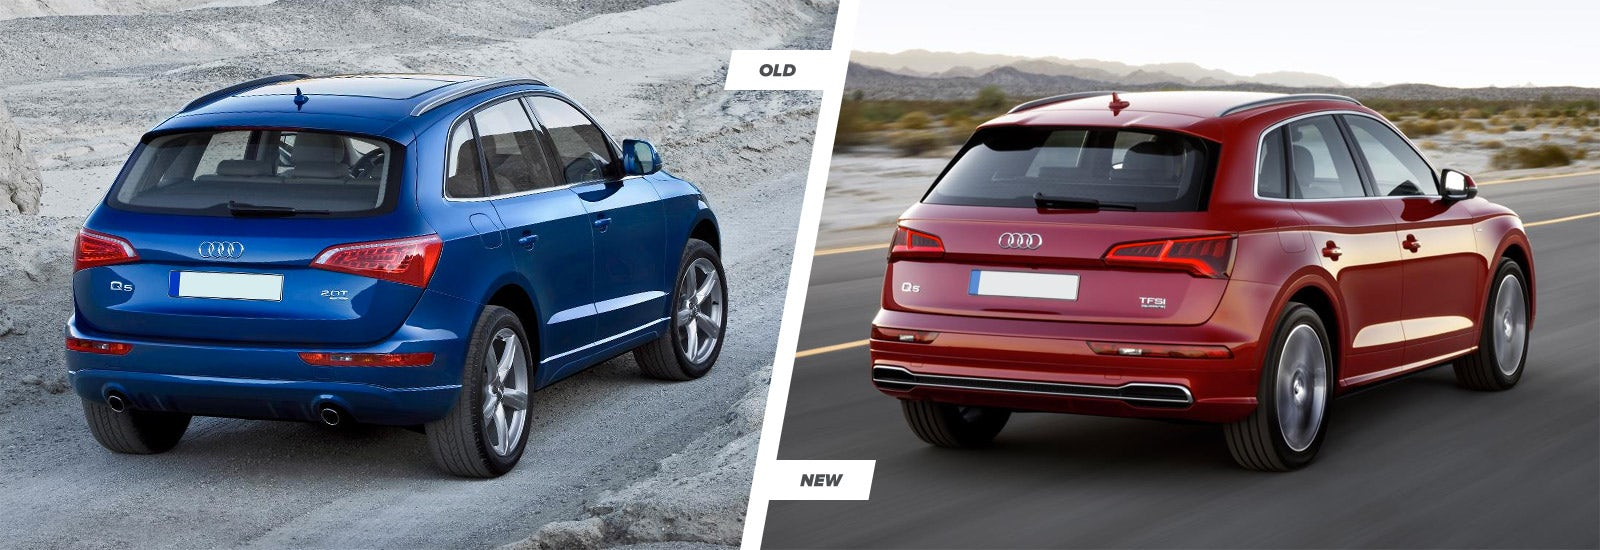 Audi Q SUV New Vs Old Compared Carwow - Audi q5 models